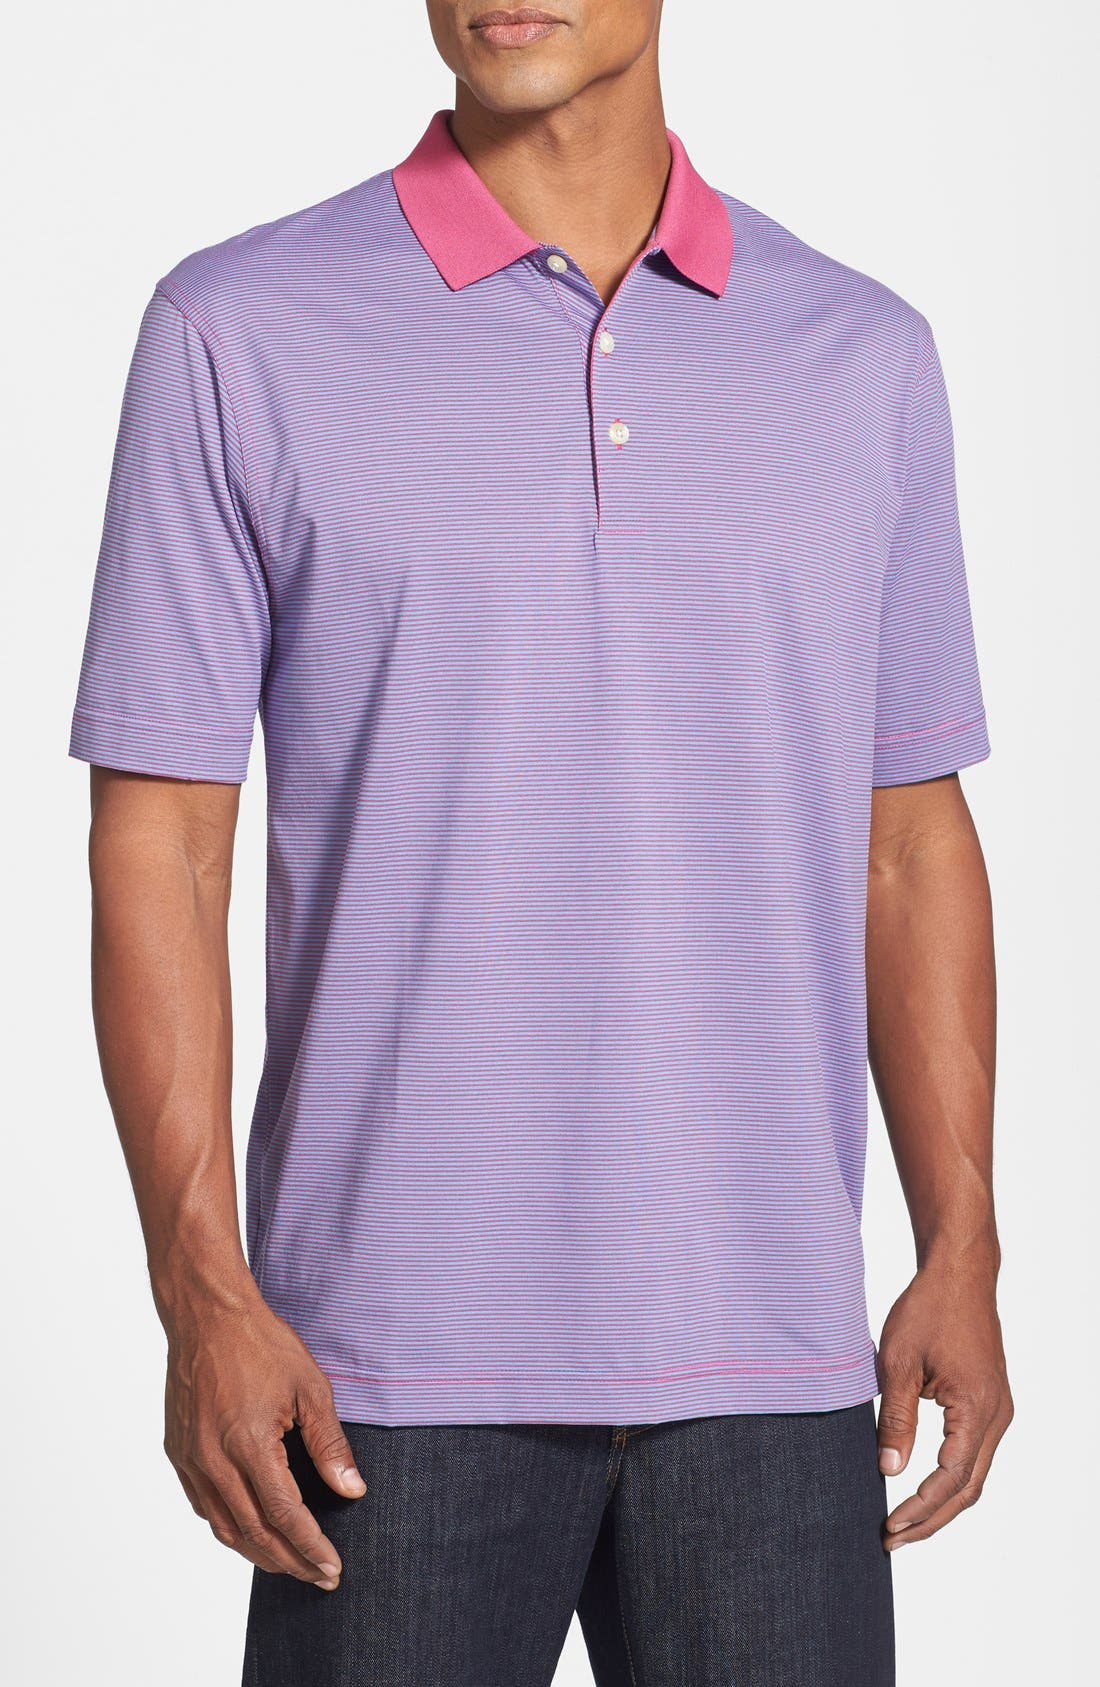 Alternate Image 1 Selected - Cutter & Buck '70/2's Performance Carson Stripe' Regular Fit Polo (Big & Tall)